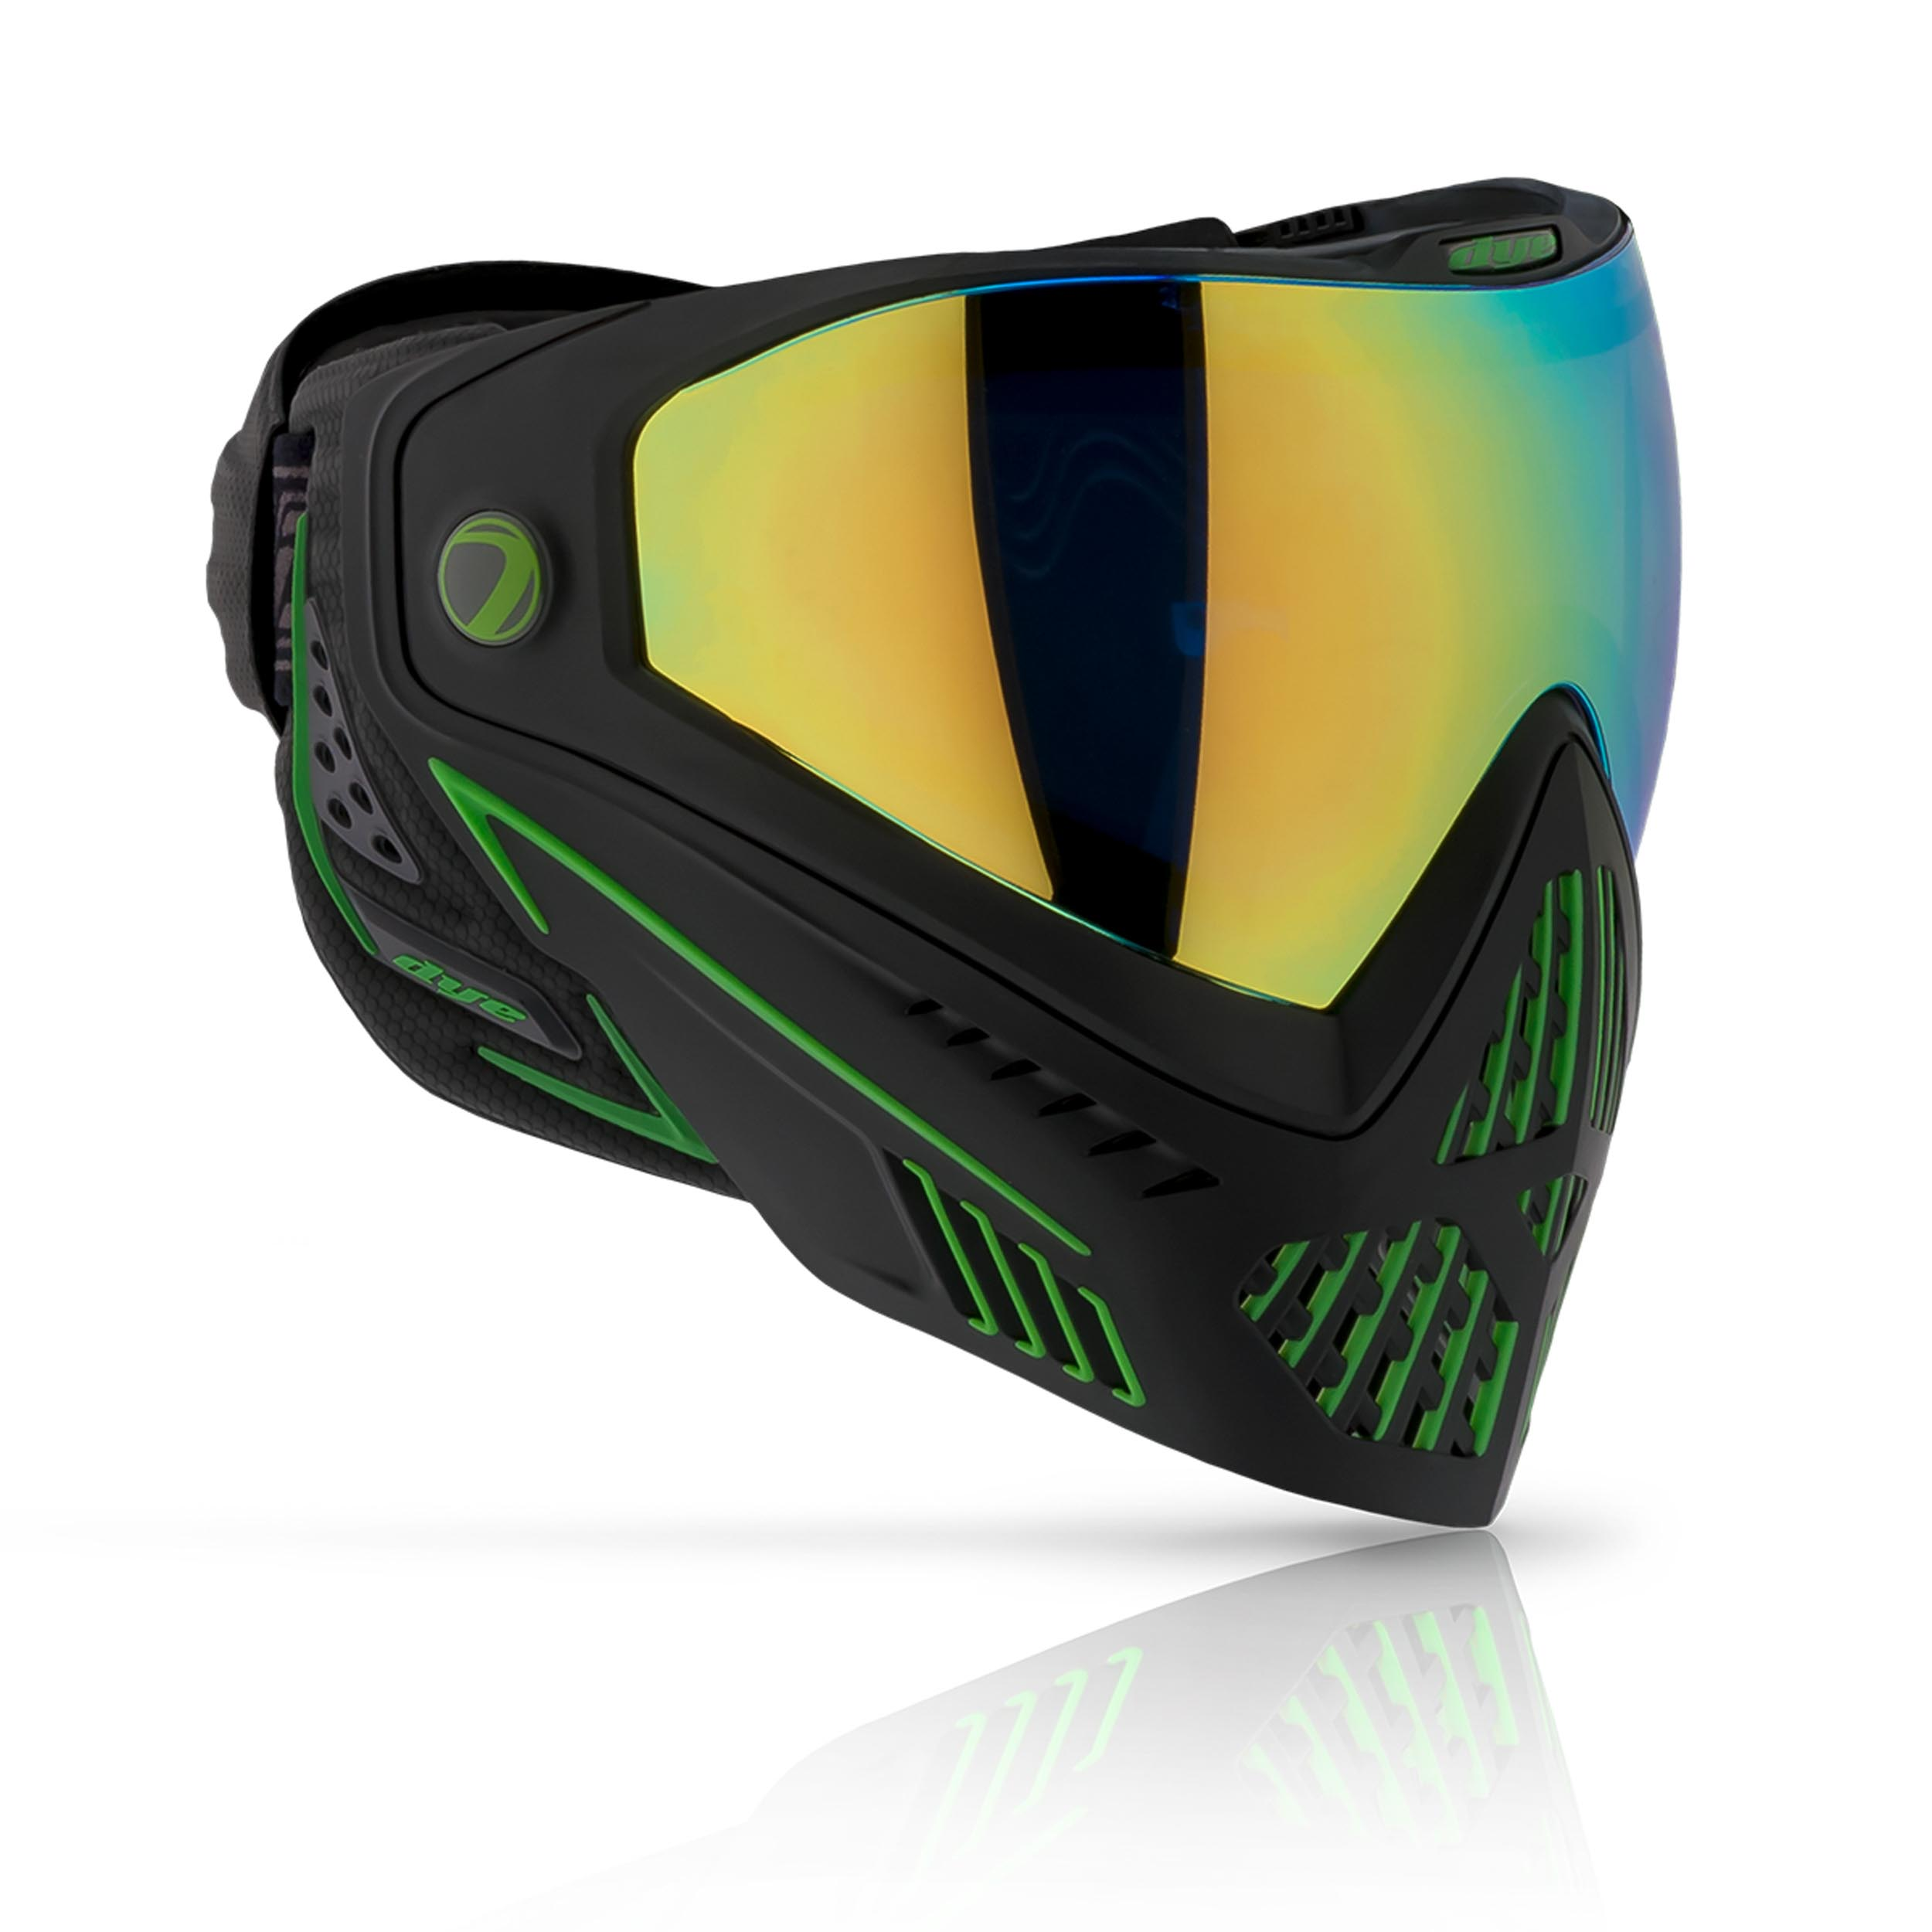 MAS472 Dye I5 thermal goggle Onyx Black Gold 2.0 - MAS473